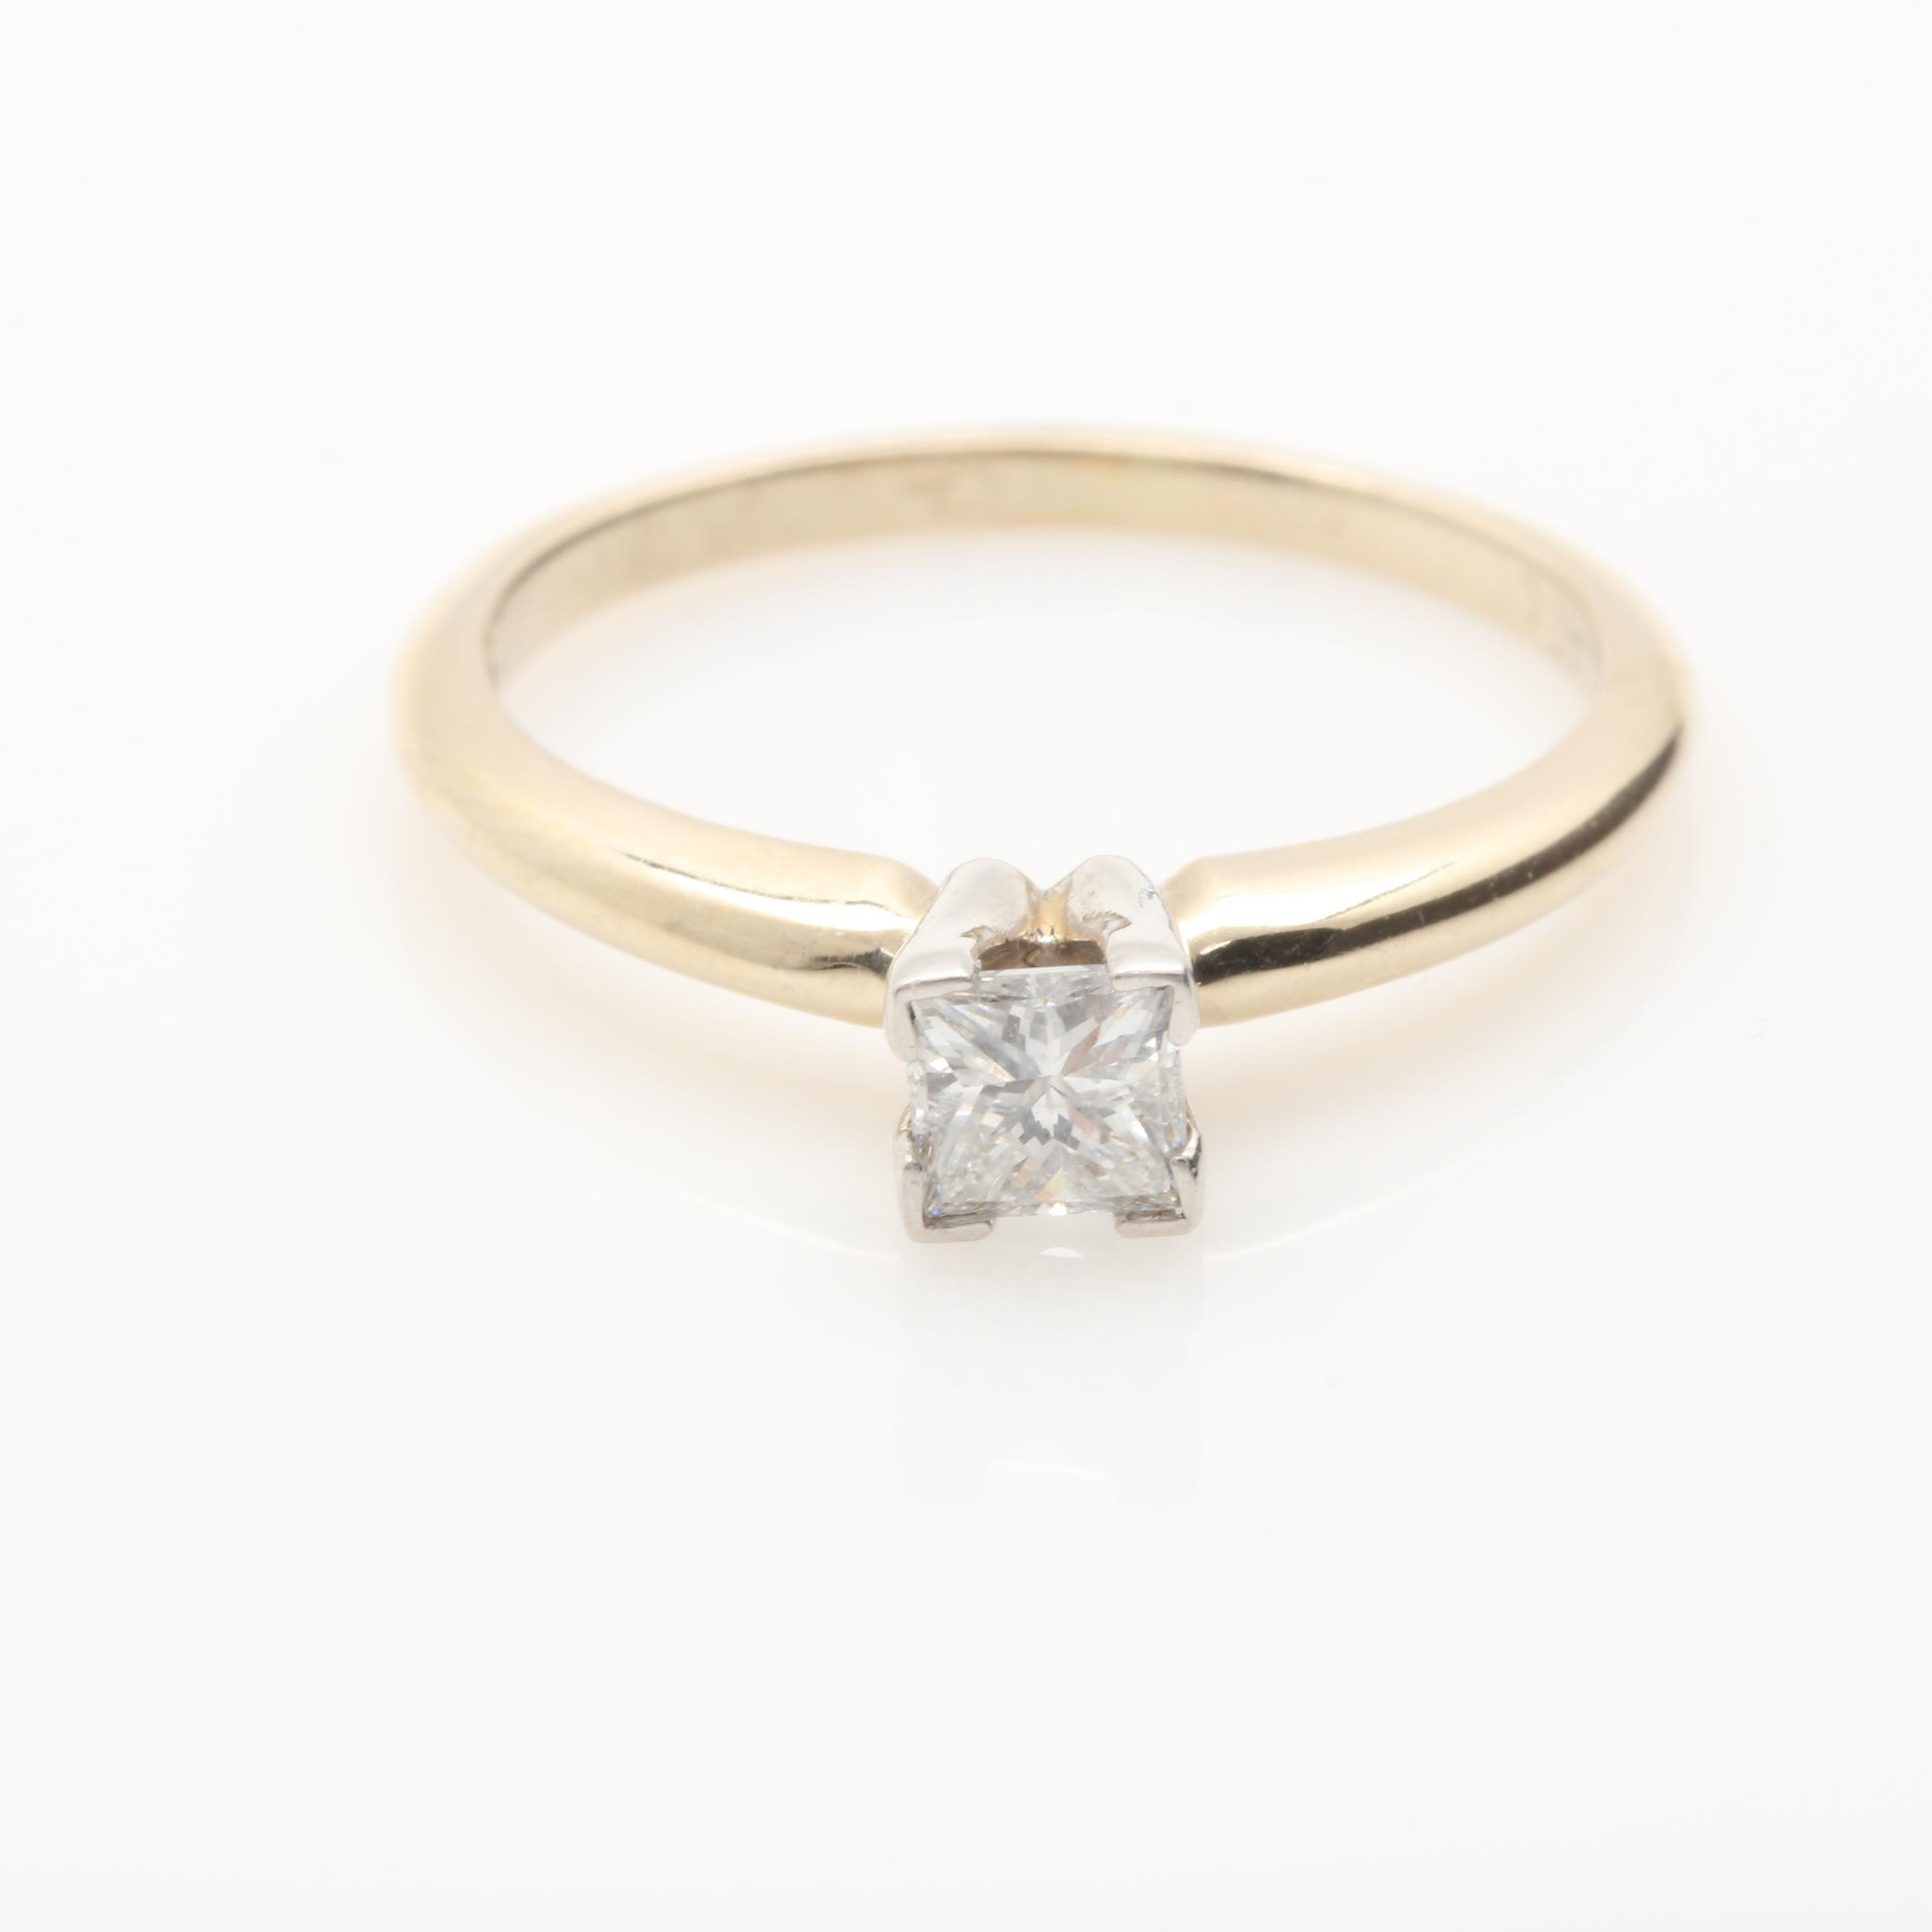 18K Yellow Gold Diamond Solitaire Ring with Platinum Accents